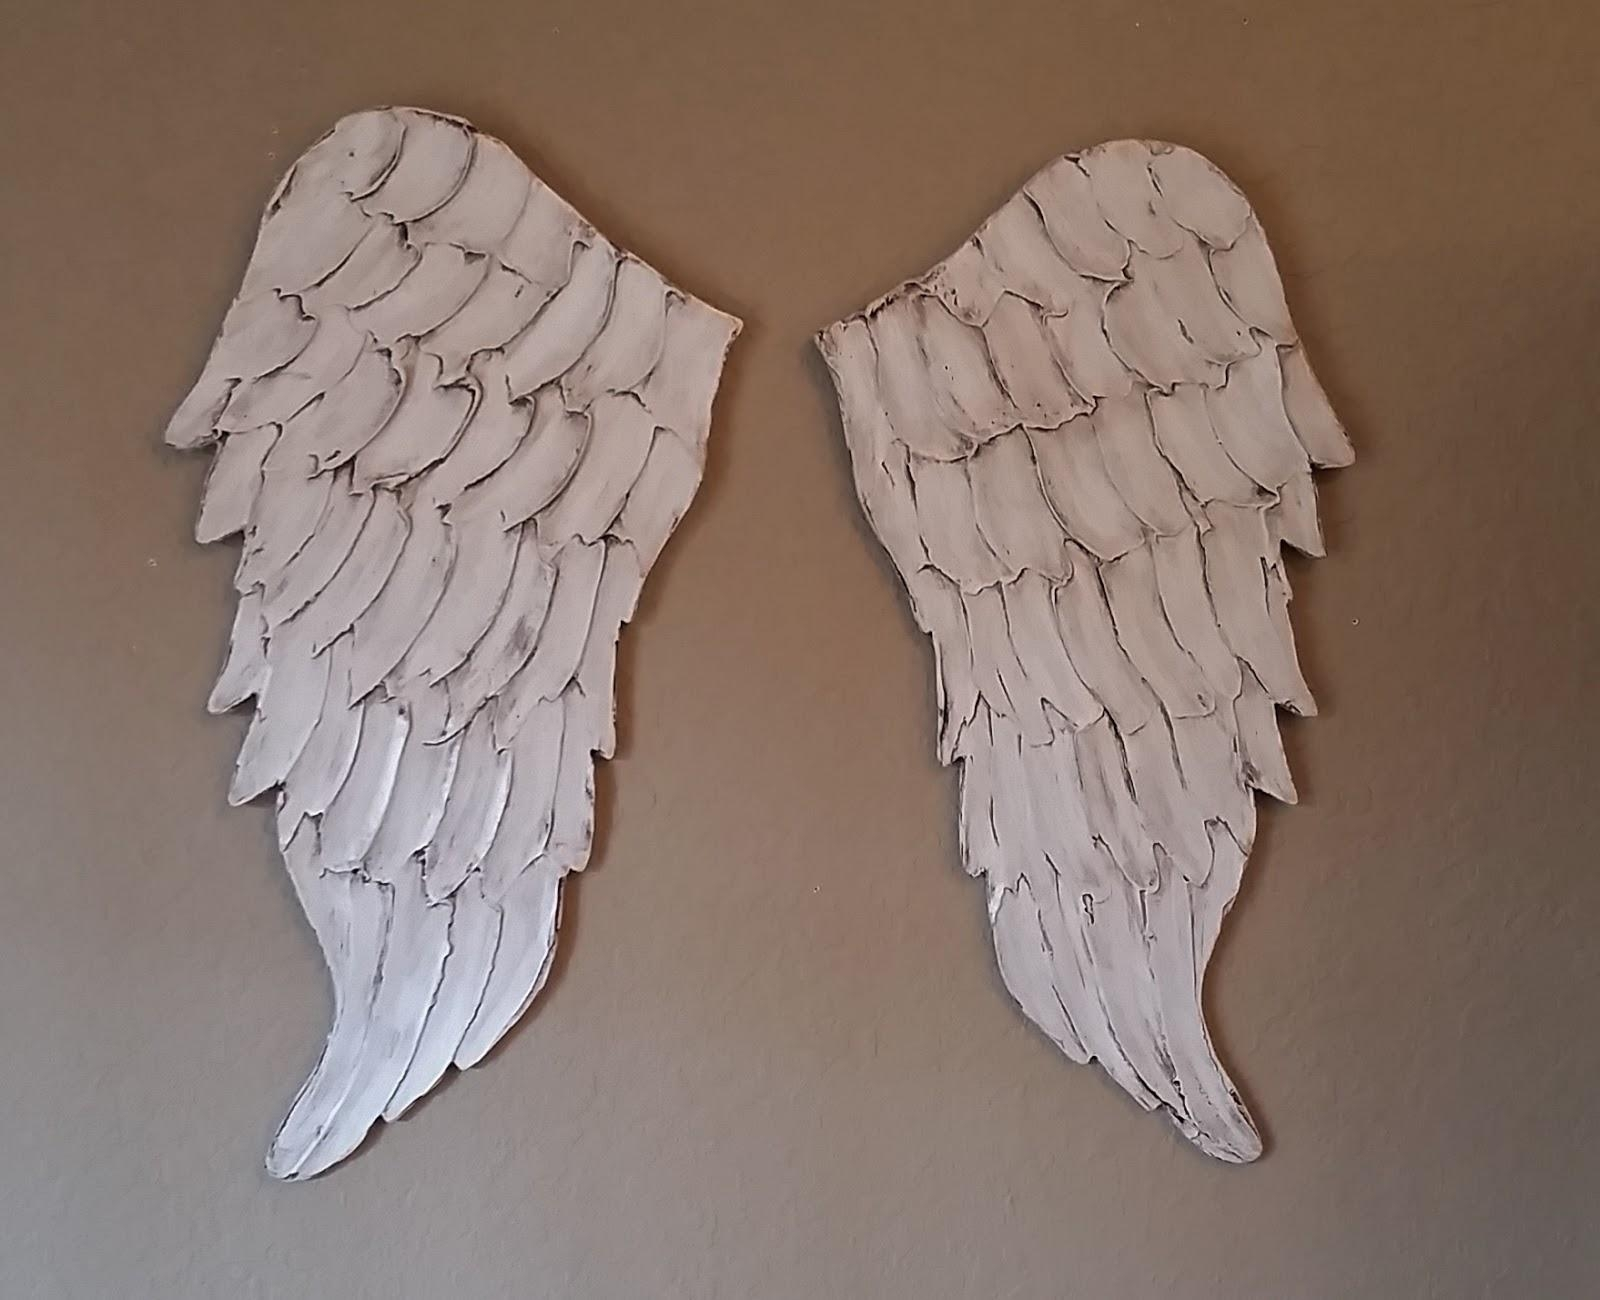 Angel Wing Wall Art, Carved Wood Look | Lucy Designs With Regard To Angel Wing Wall Art (Image 2 of 20)